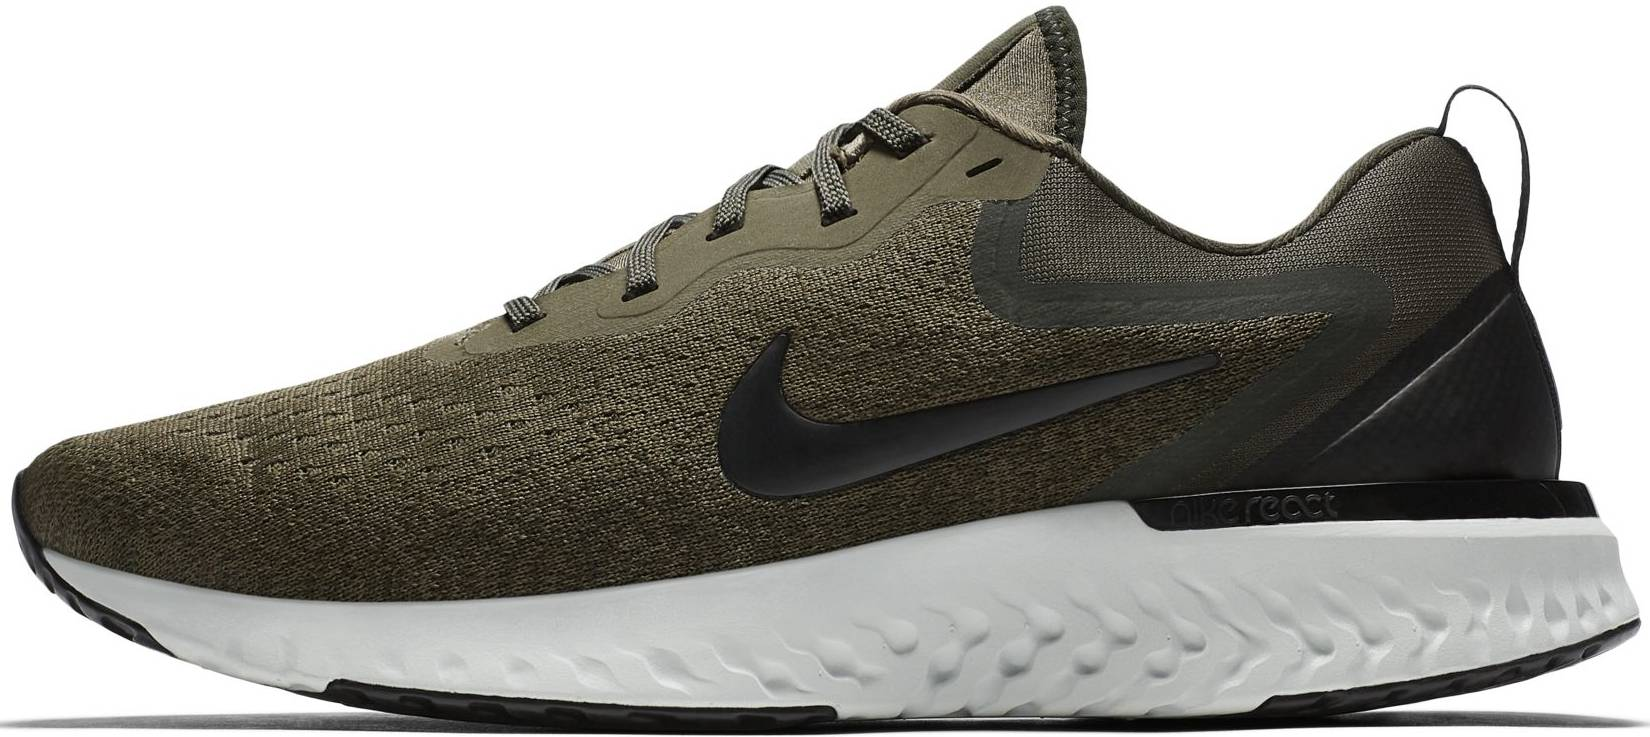 Save 40% on Green Nike Running Shoes